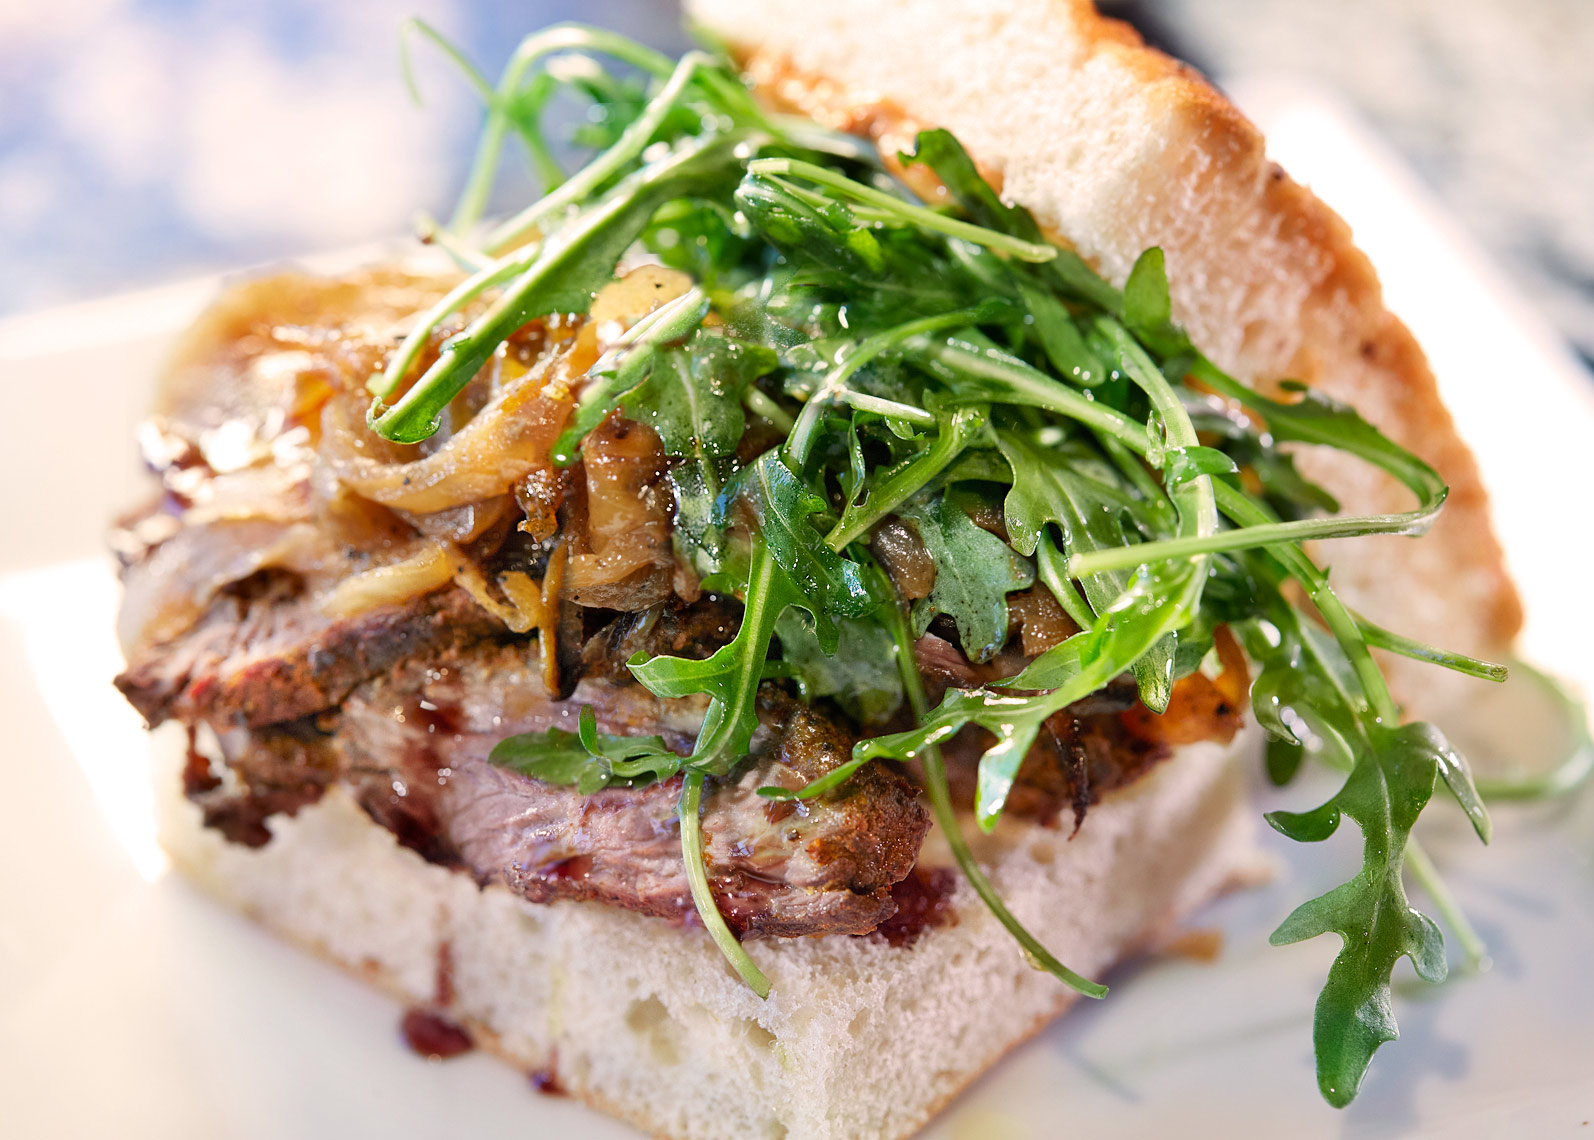 Roast Beef sandwich at The Chef and I restaurant in Nashville with balsamic onions and arugula on garlic focaccia.